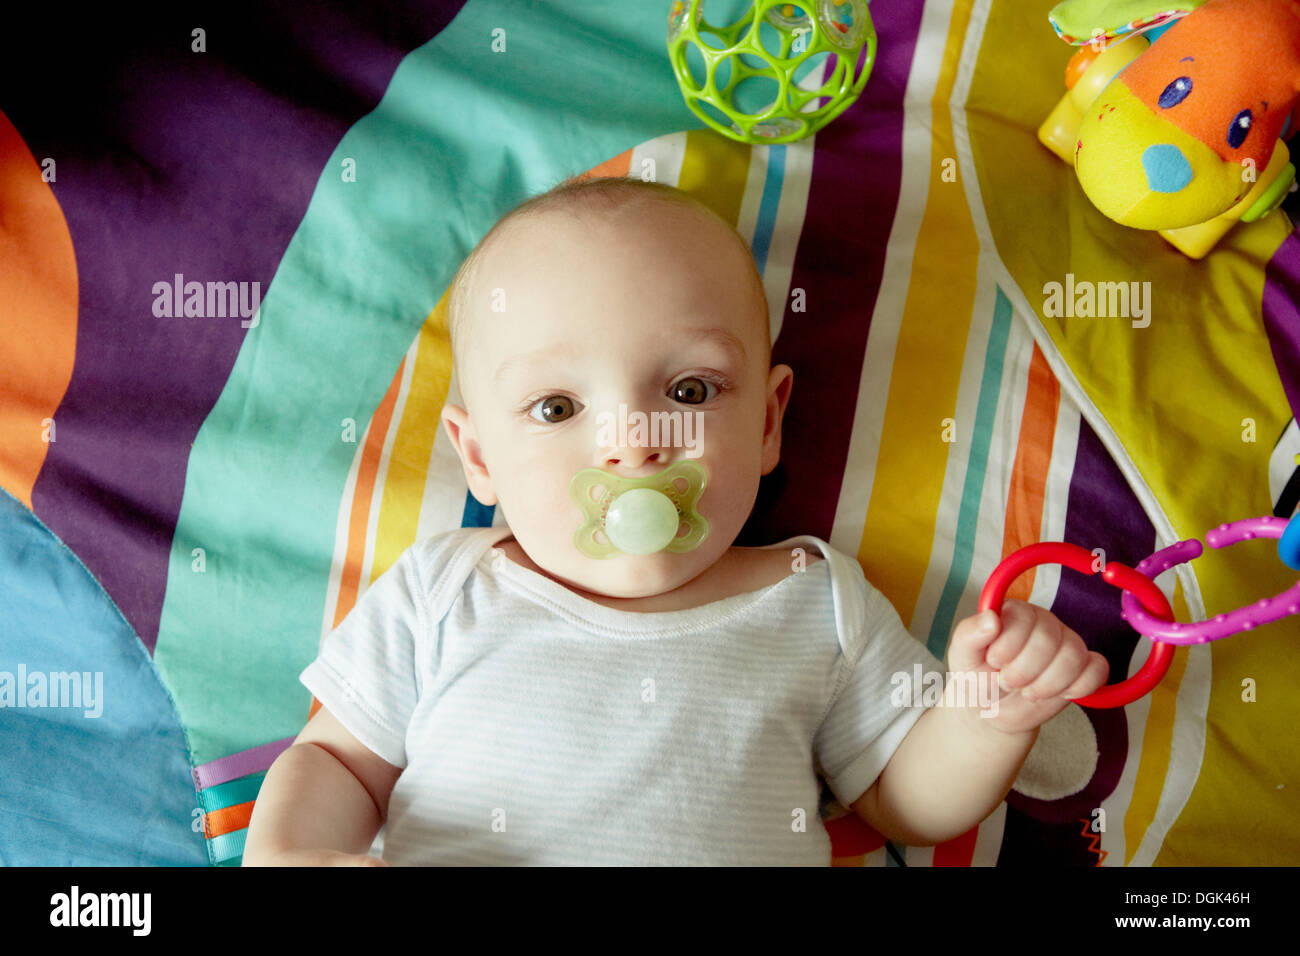 Baby Boy lying on blanket sucking pacifier et jouer avec des jouets Photo Stock